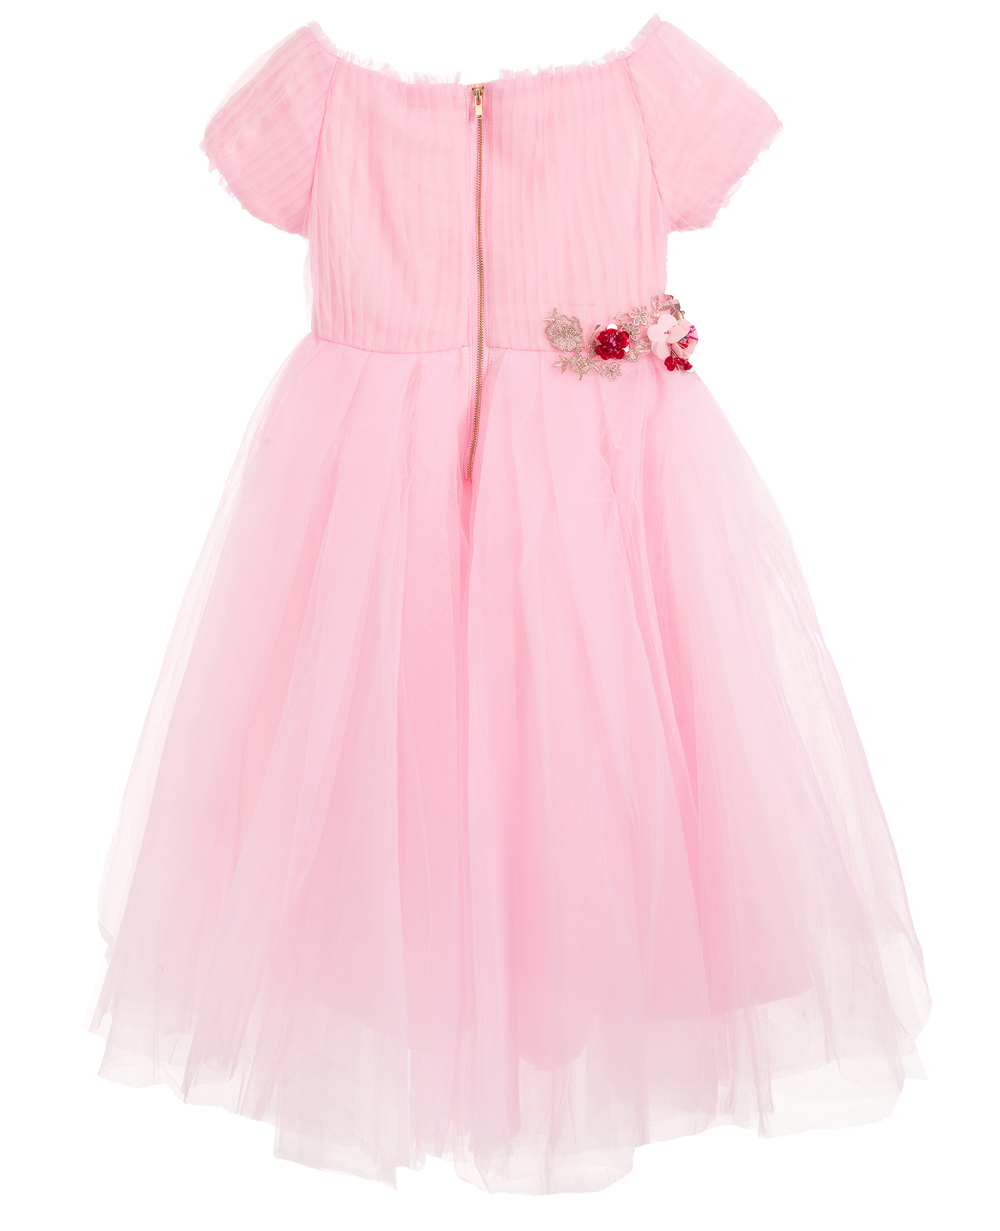 Pink Tulle Dress with Flower Embrodiery Short Sleeves Elegant Wedding Dress